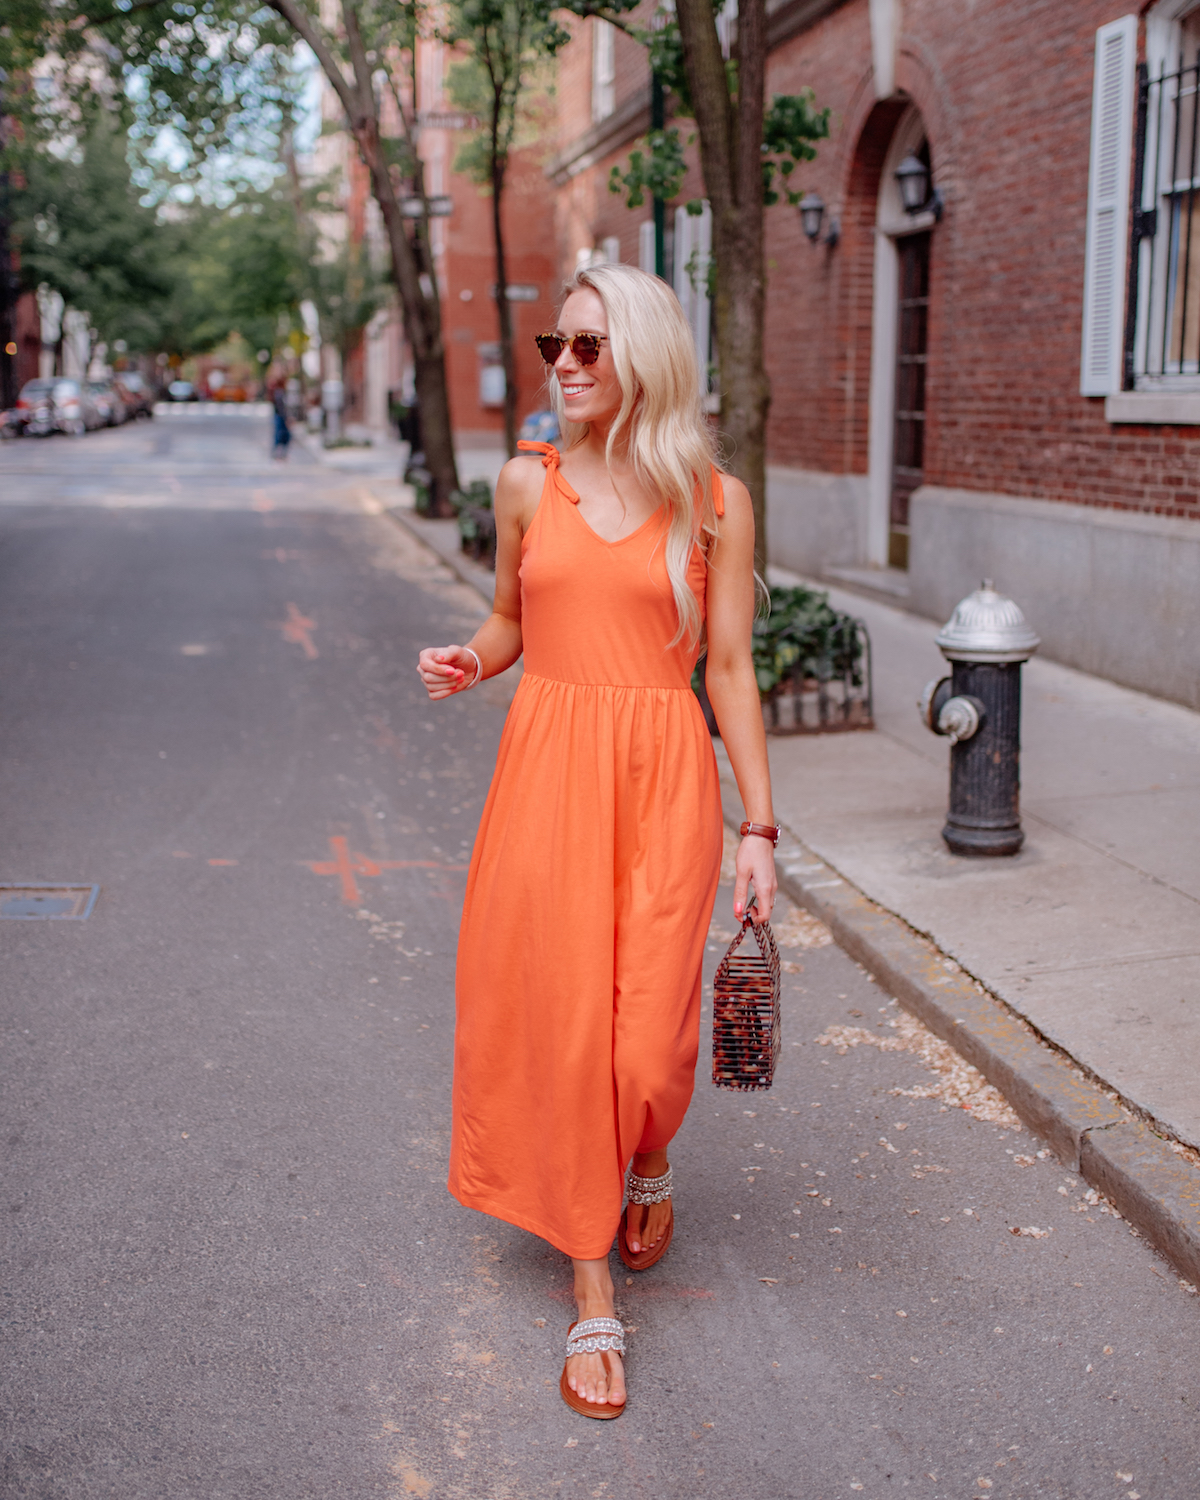 Vero Moda Peach Tie Shoulder Maxi Dress